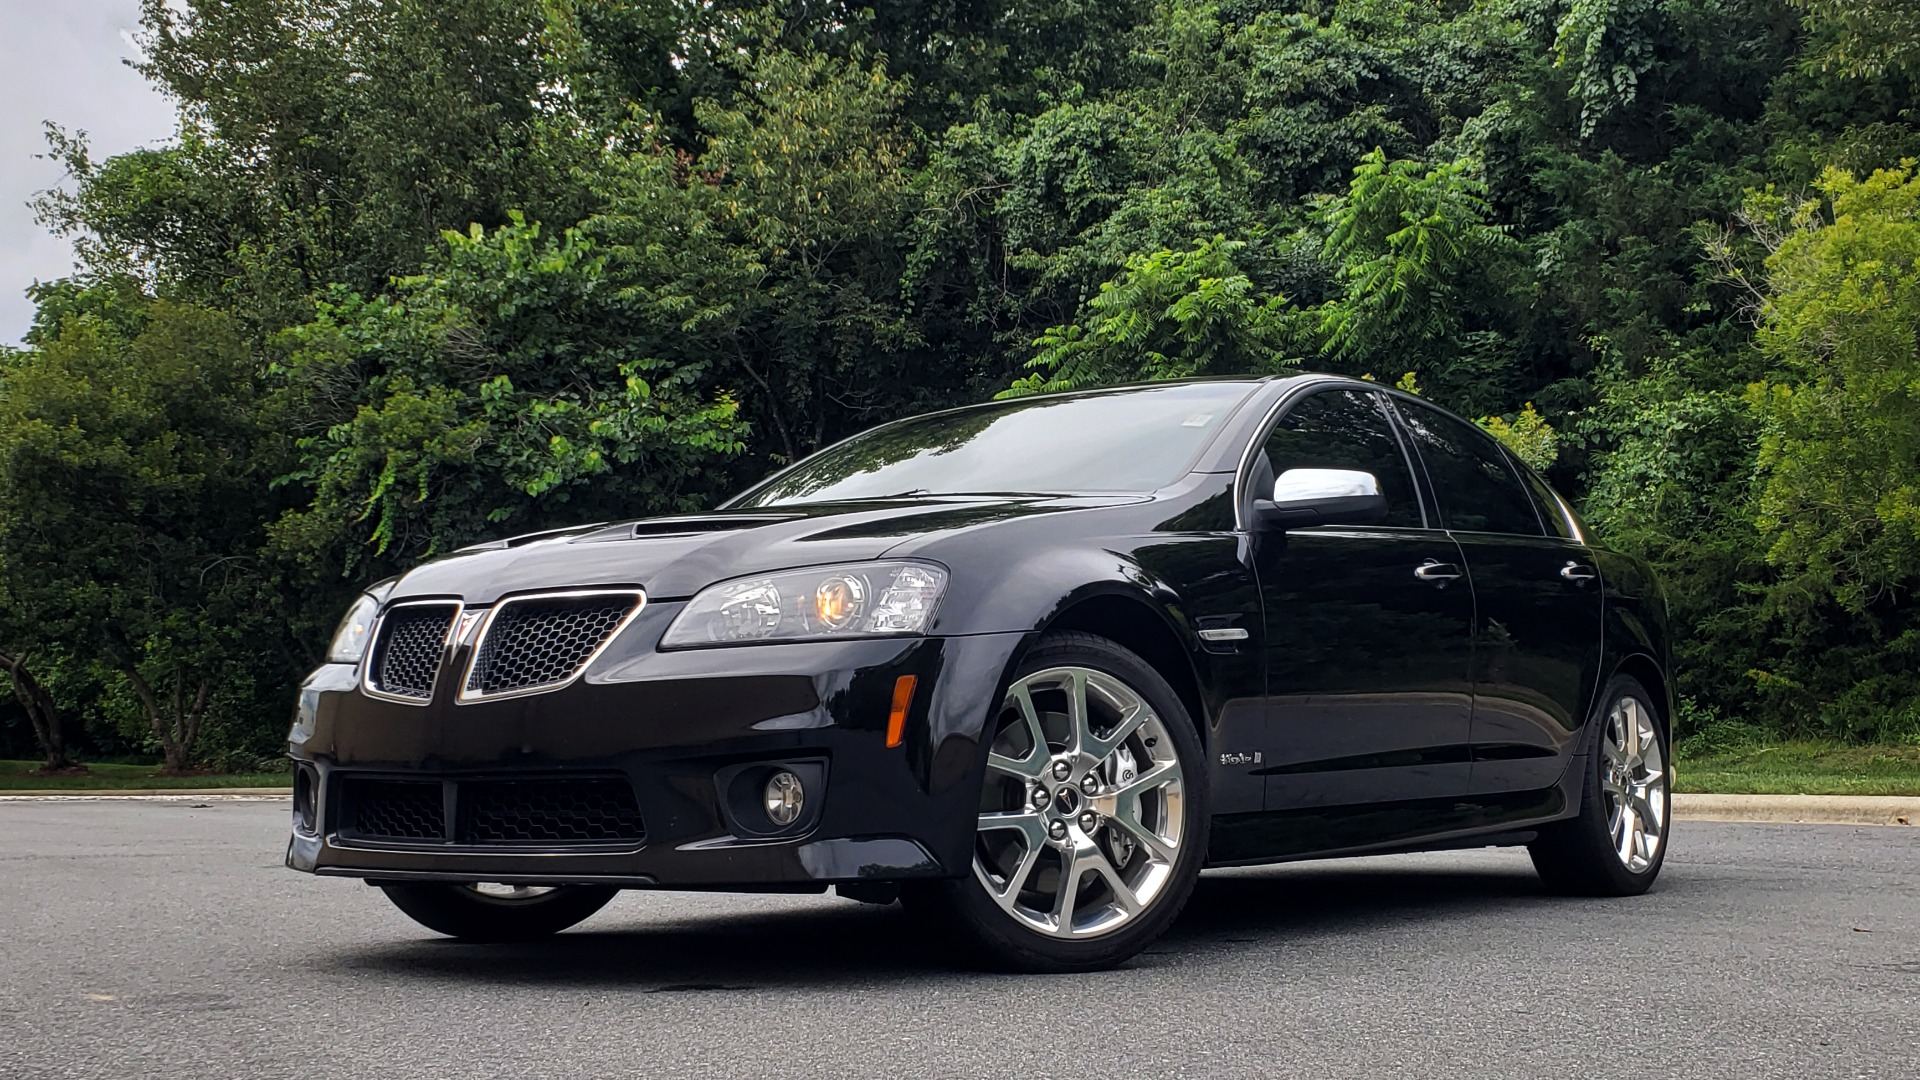 Used 2009 Pontiac G8 GXP / 6.2L LS3 V8 / 6-SPD AUTO / SUNROOF / 19IN WHEELS for sale Sold at Formula Imports in Charlotte NC 28227 2